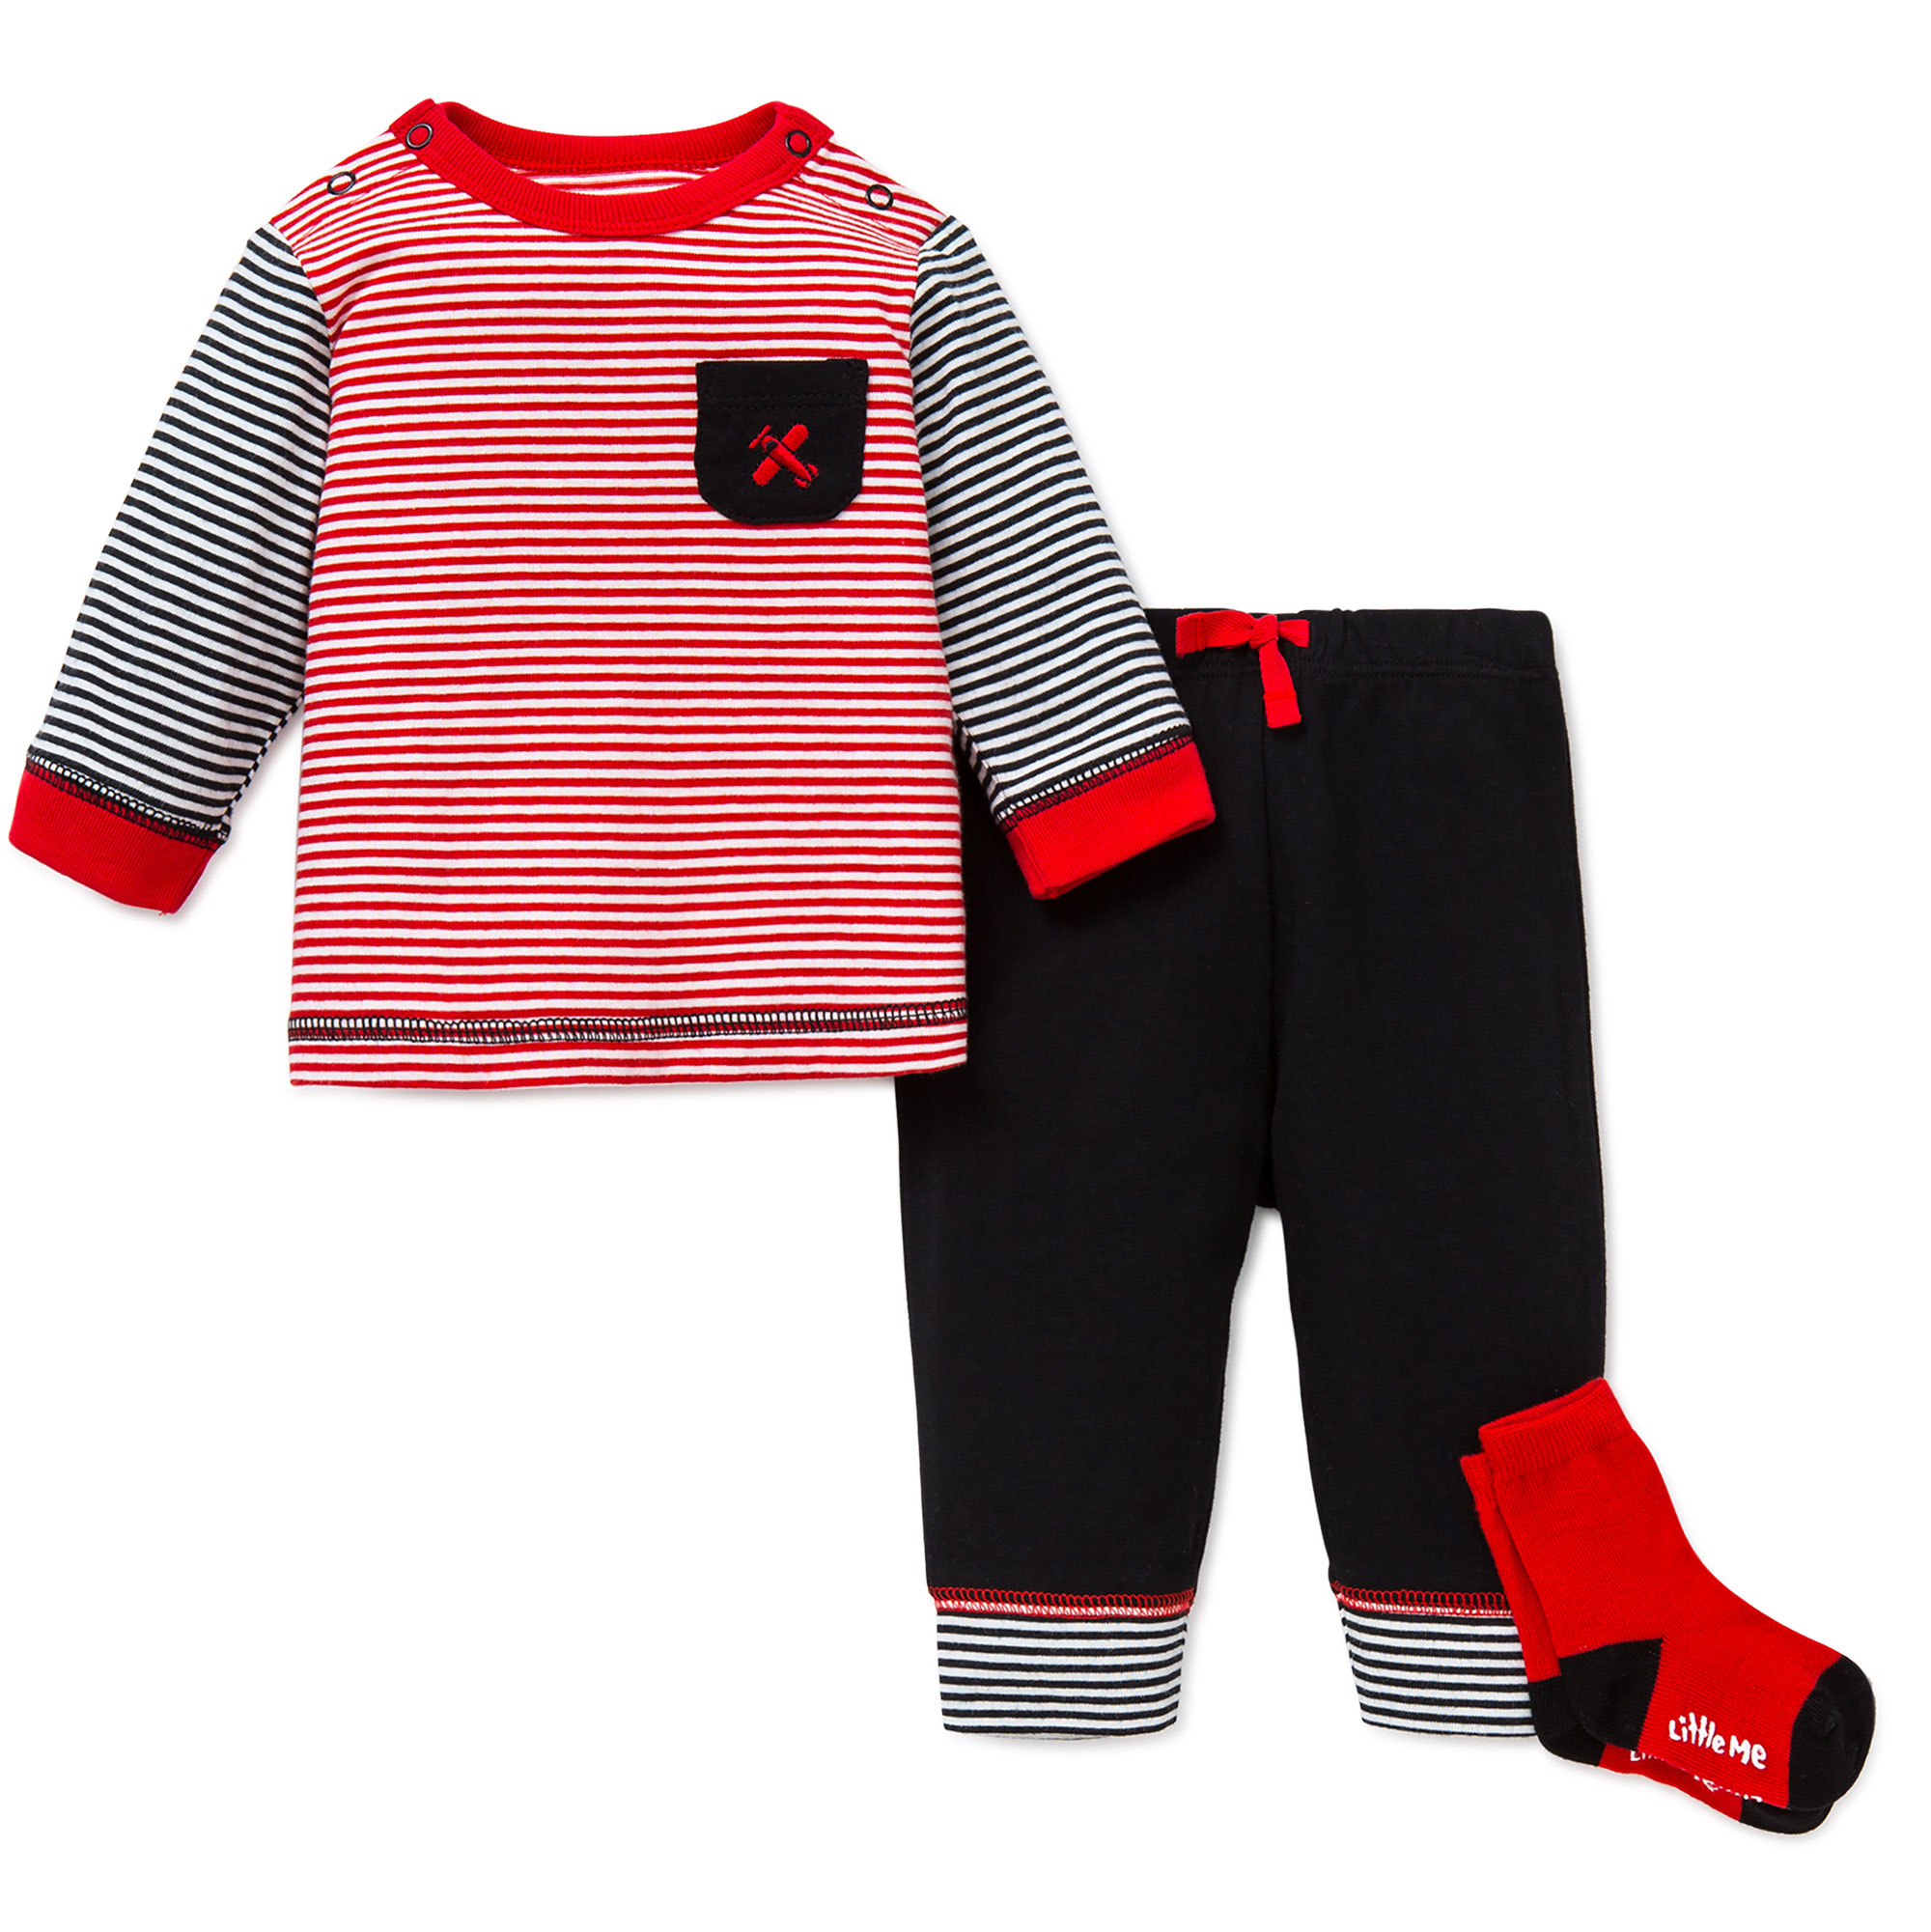 Little Me 3 Piece Pants Long Sleeve Shirt and Socks Airplane Jogger Set 9 Mths For Baby Boys  Clothing Set; Baby Boys Outfit; Baby Boys Clothes